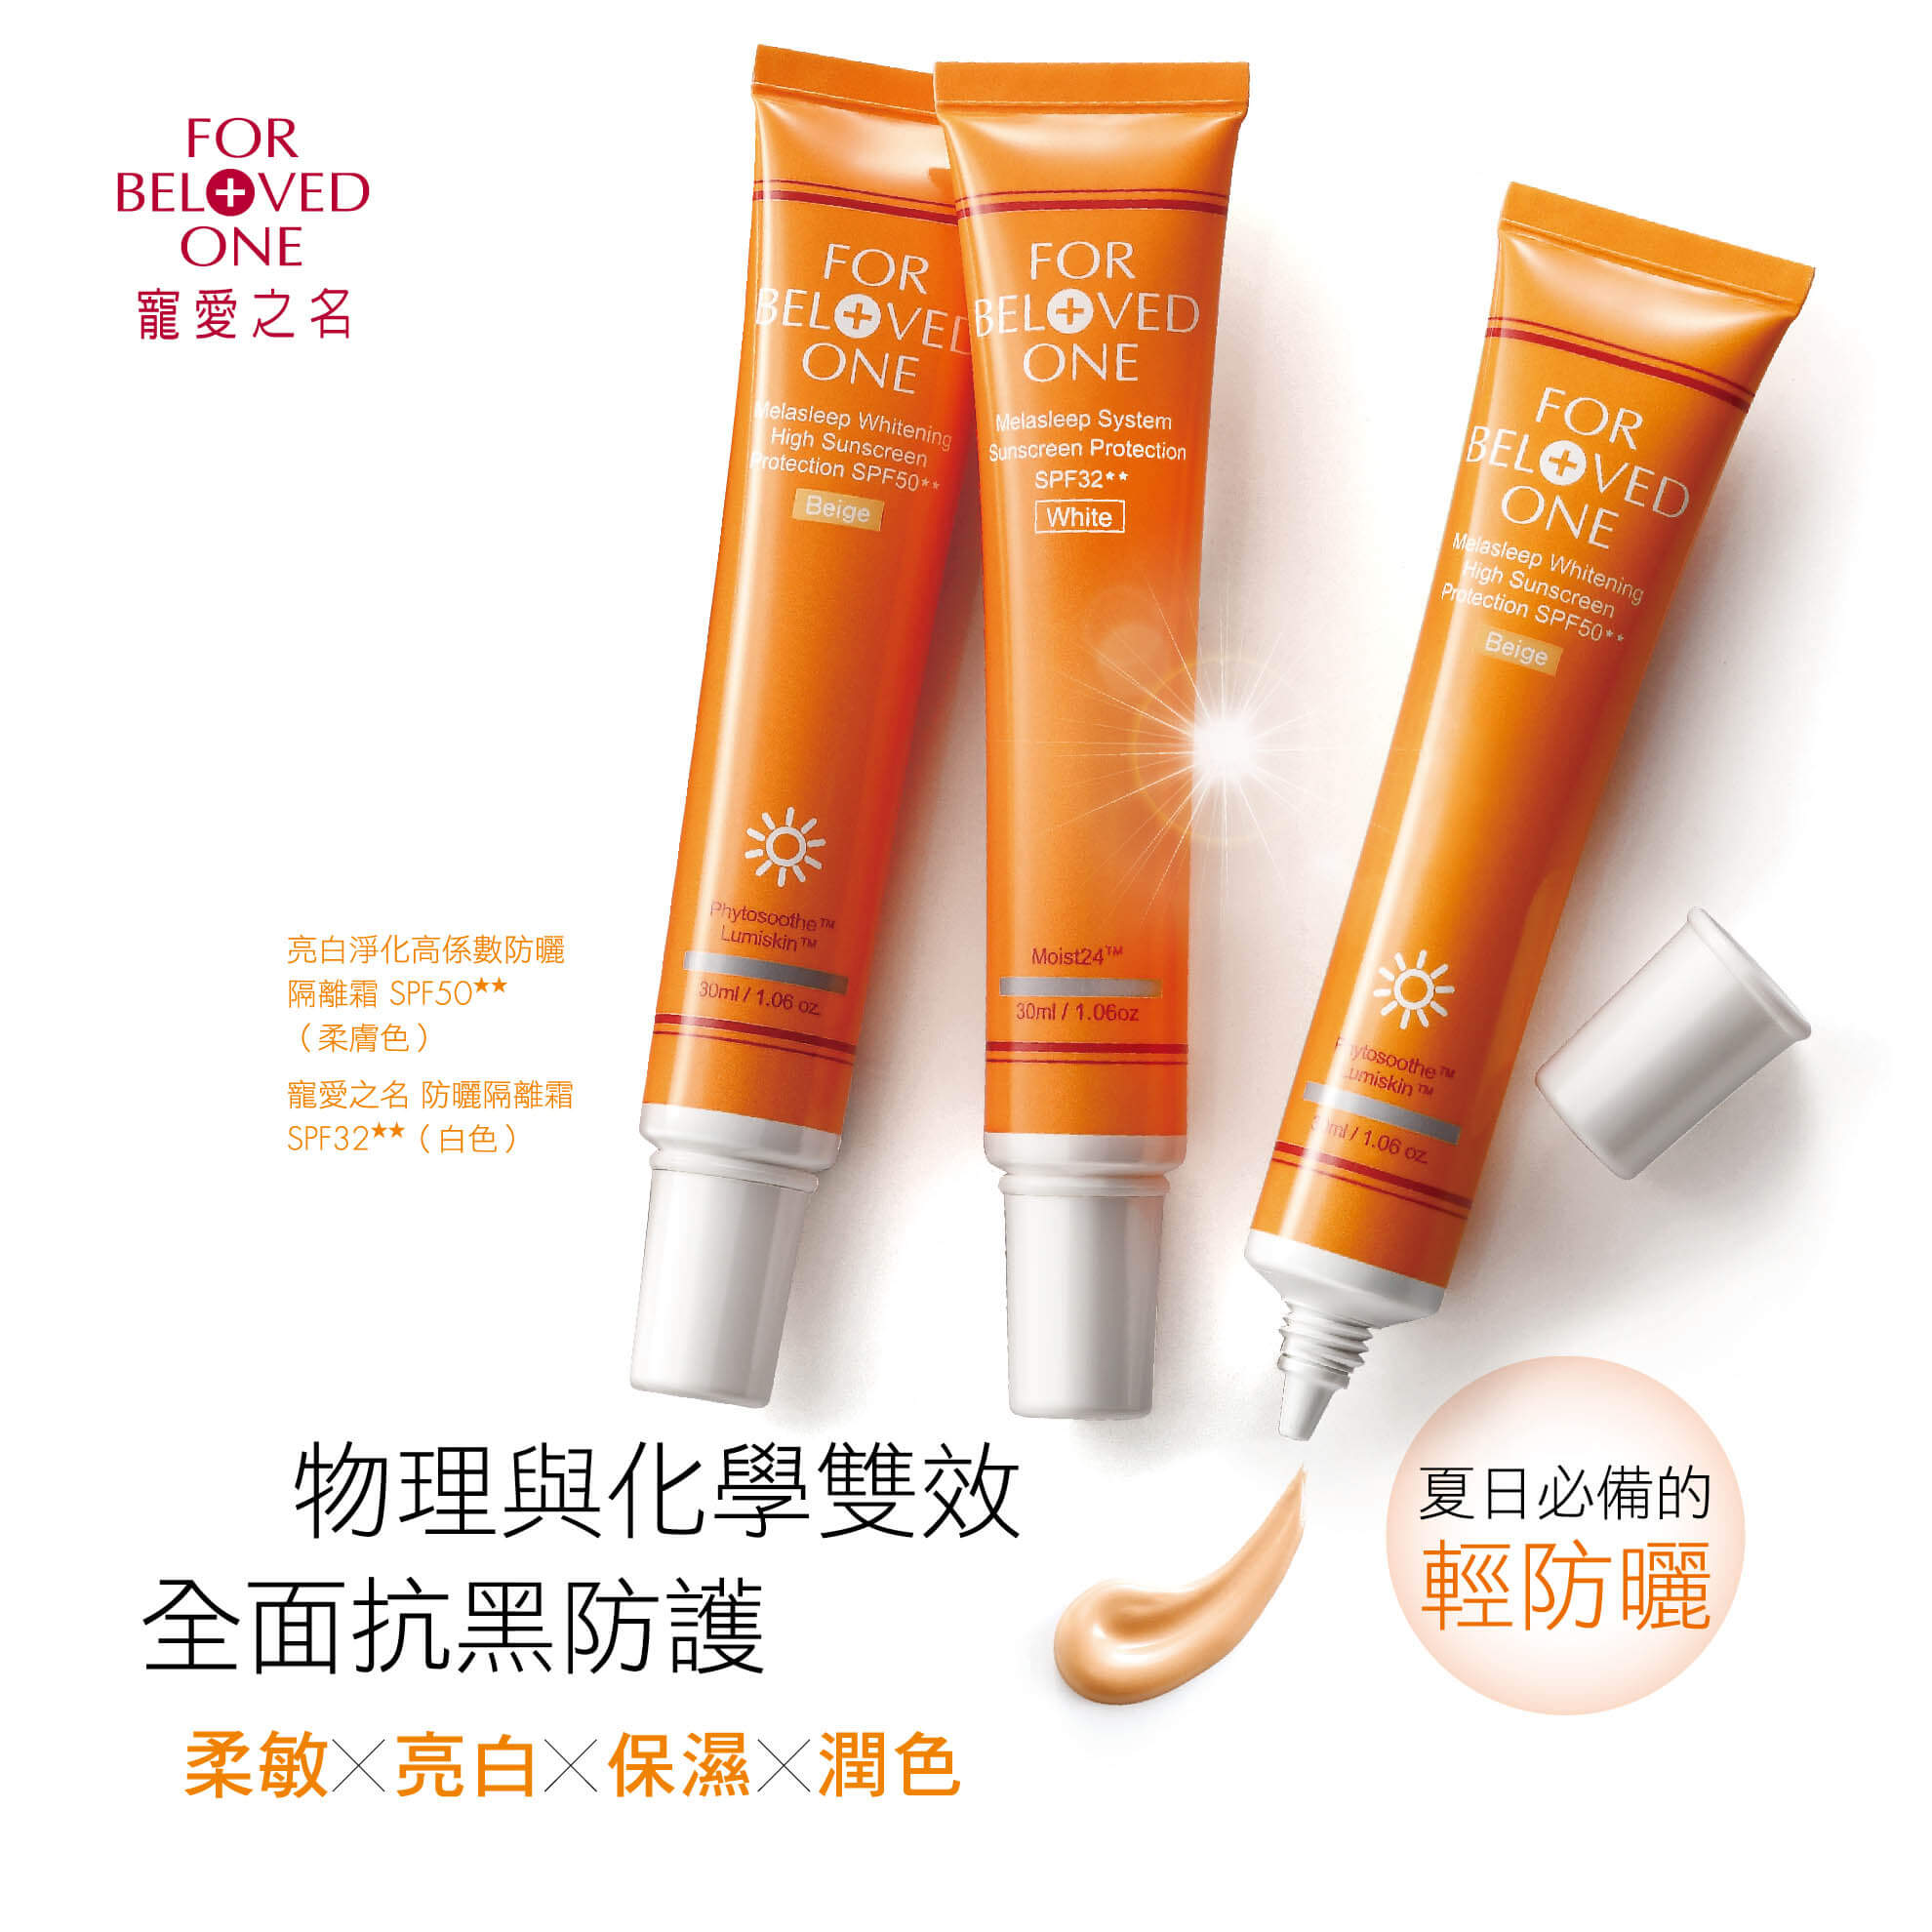 Whitening High Sunscreen Protection - Product